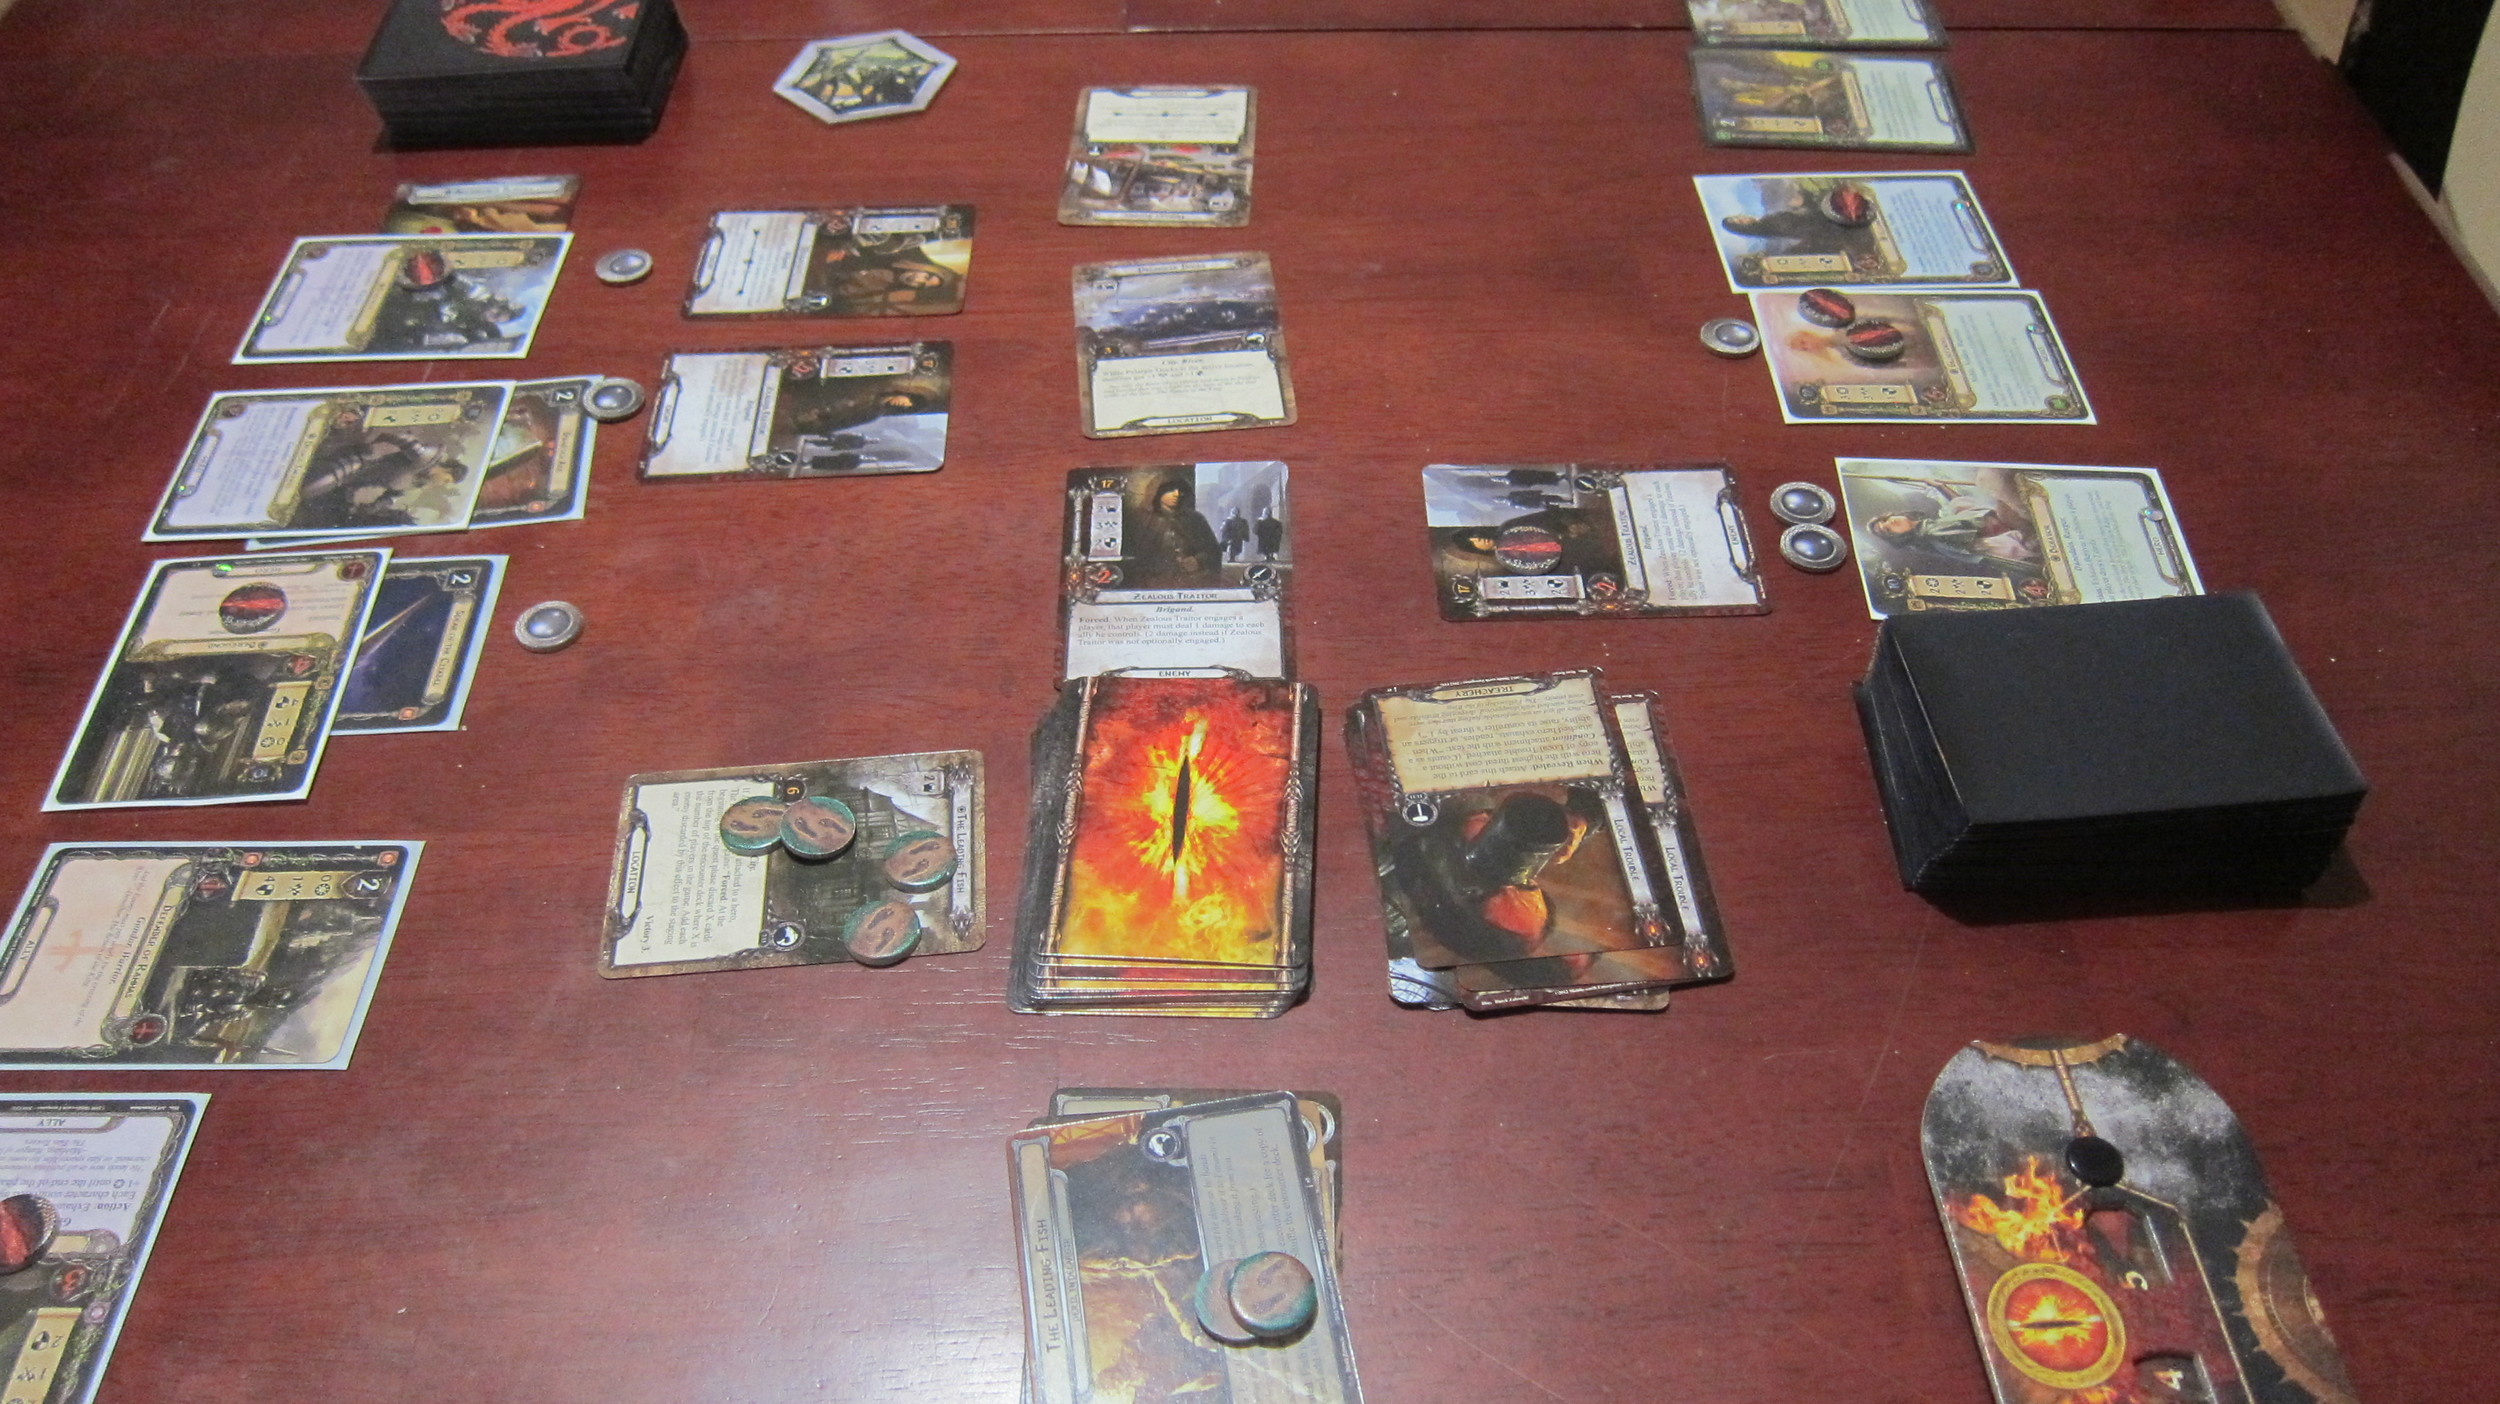 At this point in the game we stabilized. We thought it was going to be OK. We thought we would make it. And then we flipped the top card of the encounter deck...